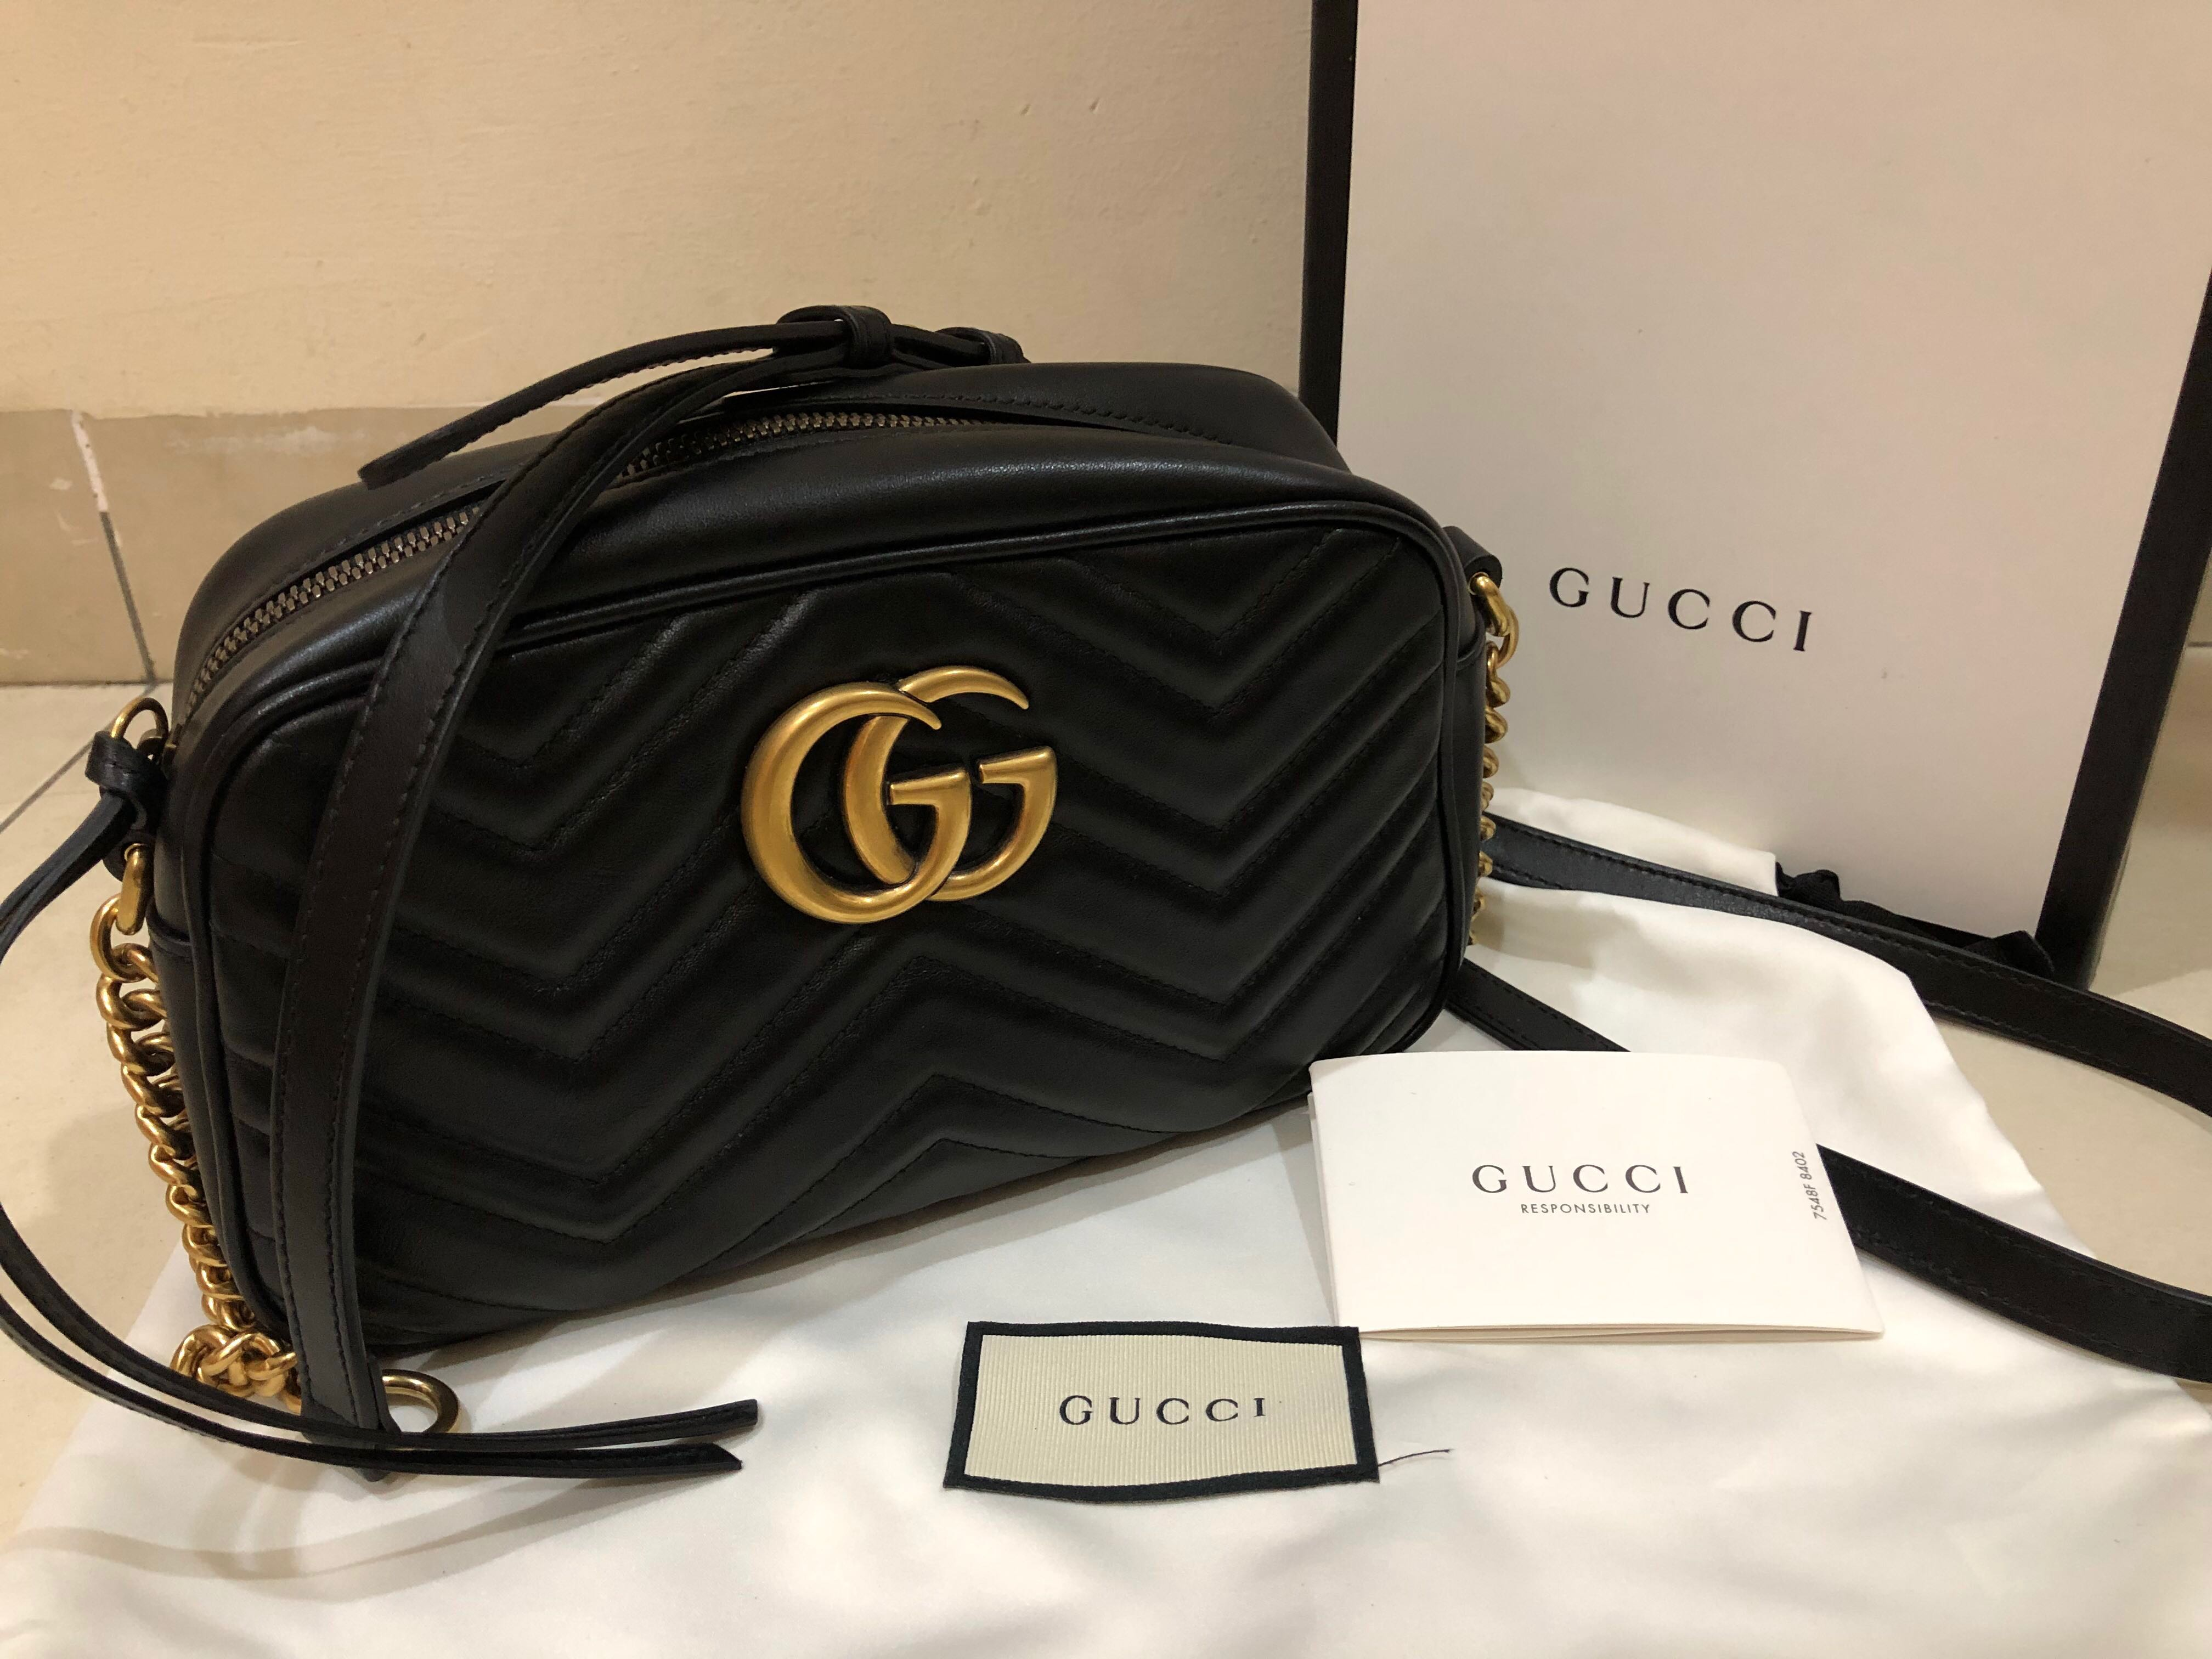 3ec4827e9872 Gucci GG Marmont Camera Bag(Matelasse Small Black), Women's Fashion, Bags &  Wallets, Others on Carousell